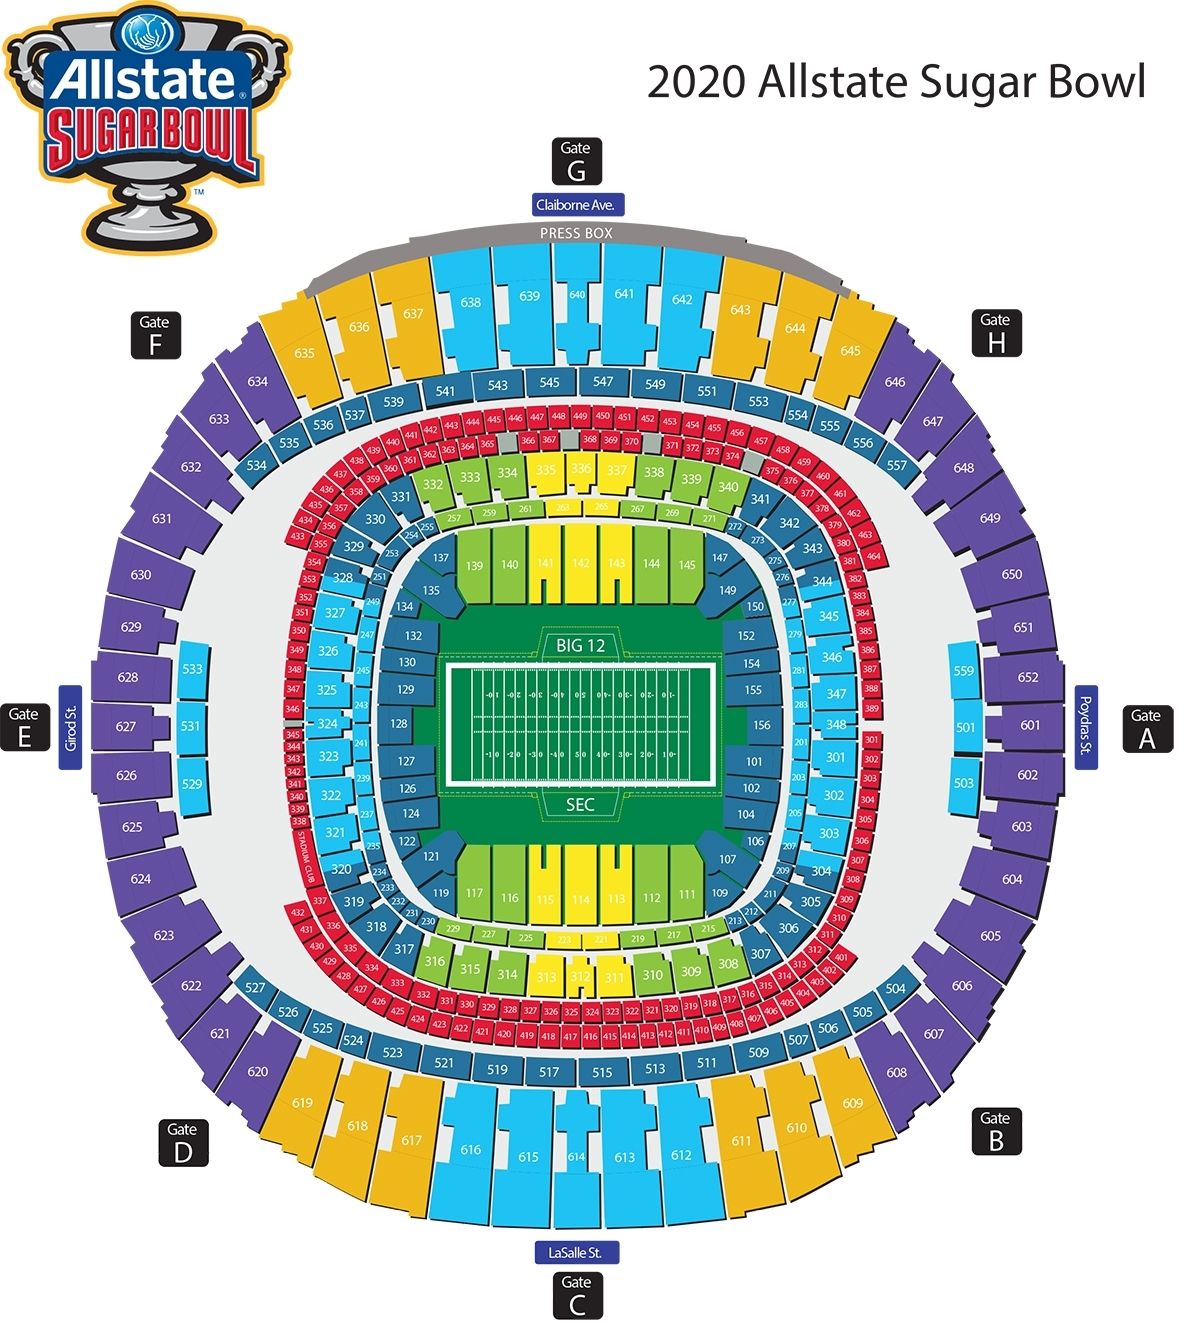 Seating Diagram - Official Site Of The Allstate Sugar Bowl within Super Bowl 2019 Stadium Seating Chart